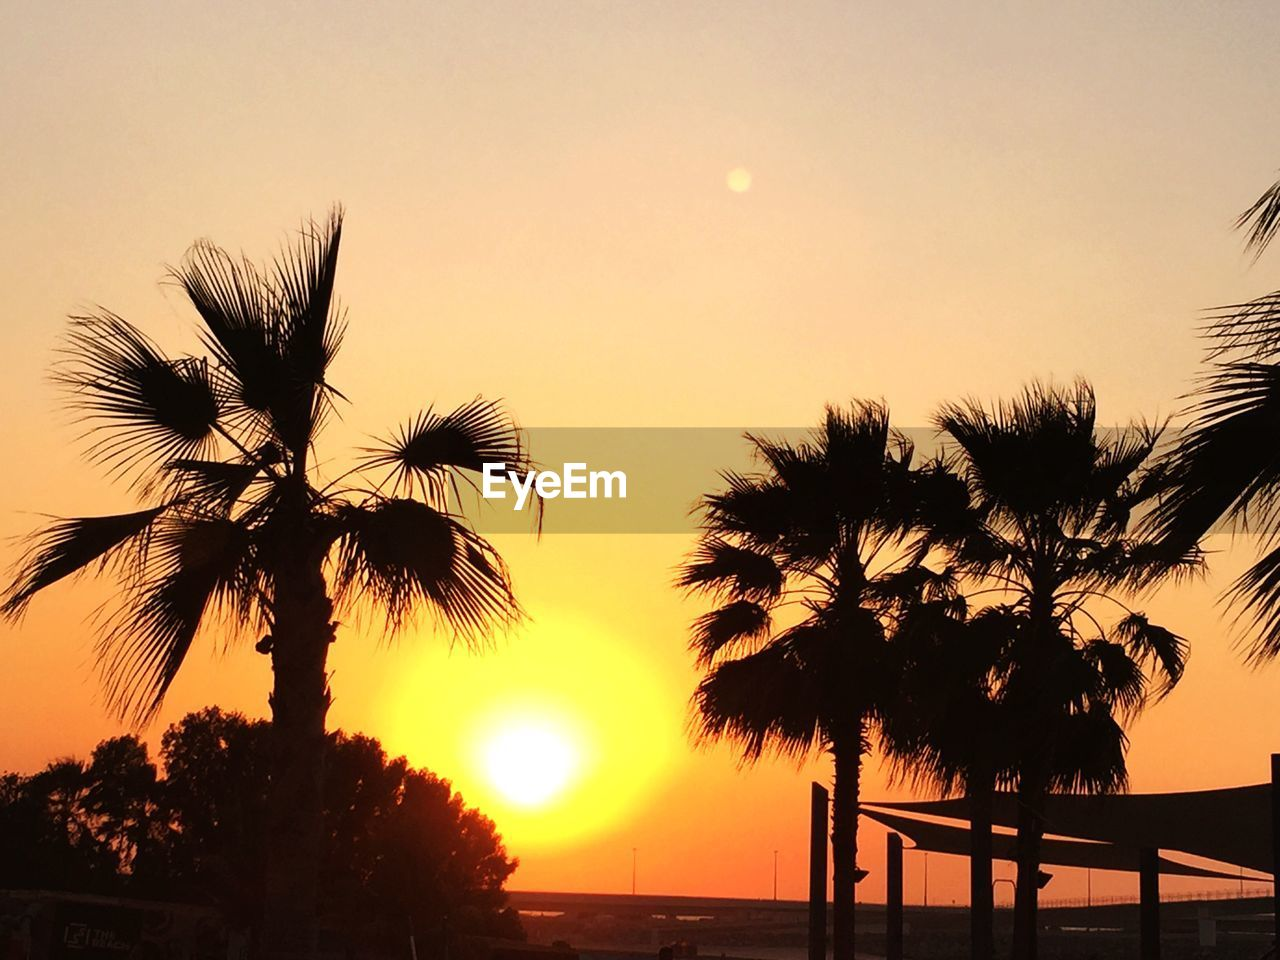 sunset, sky, palm tree, tropical climate, silhouette, plant, beauty in nature, tree, orange color, scenics - nature, sun, tranquil scene, nature, tranquility, growth, no people, water, outdoors, sunlight, coconut palm tree, tropical tree, palm leaf